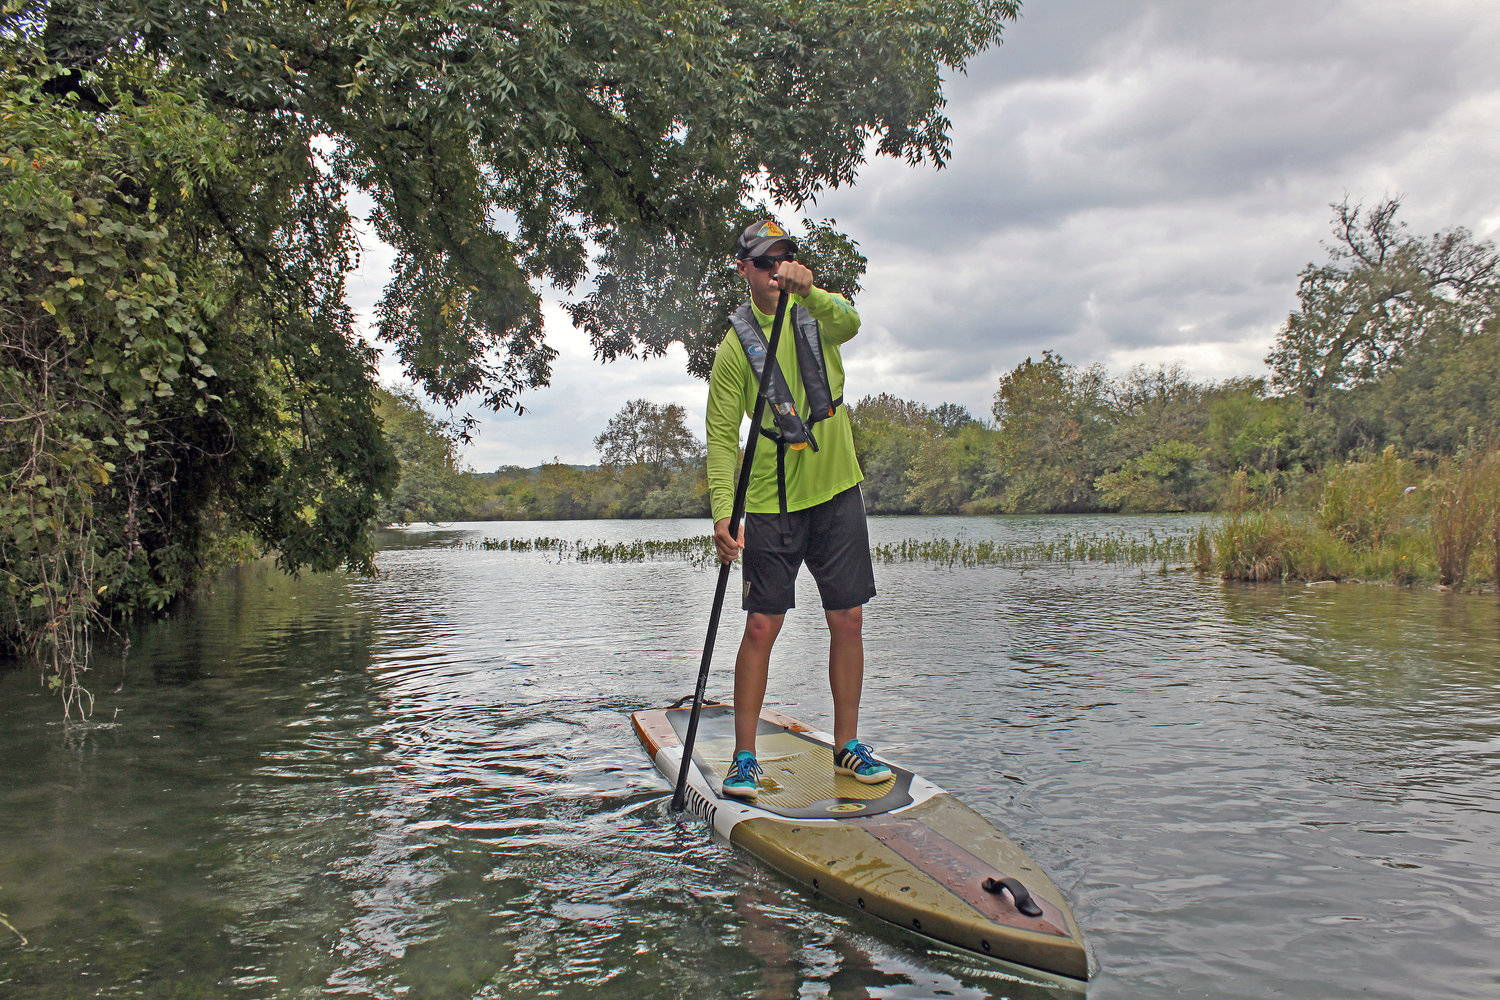 a man paddling the pau hana endurance SUP on a lake